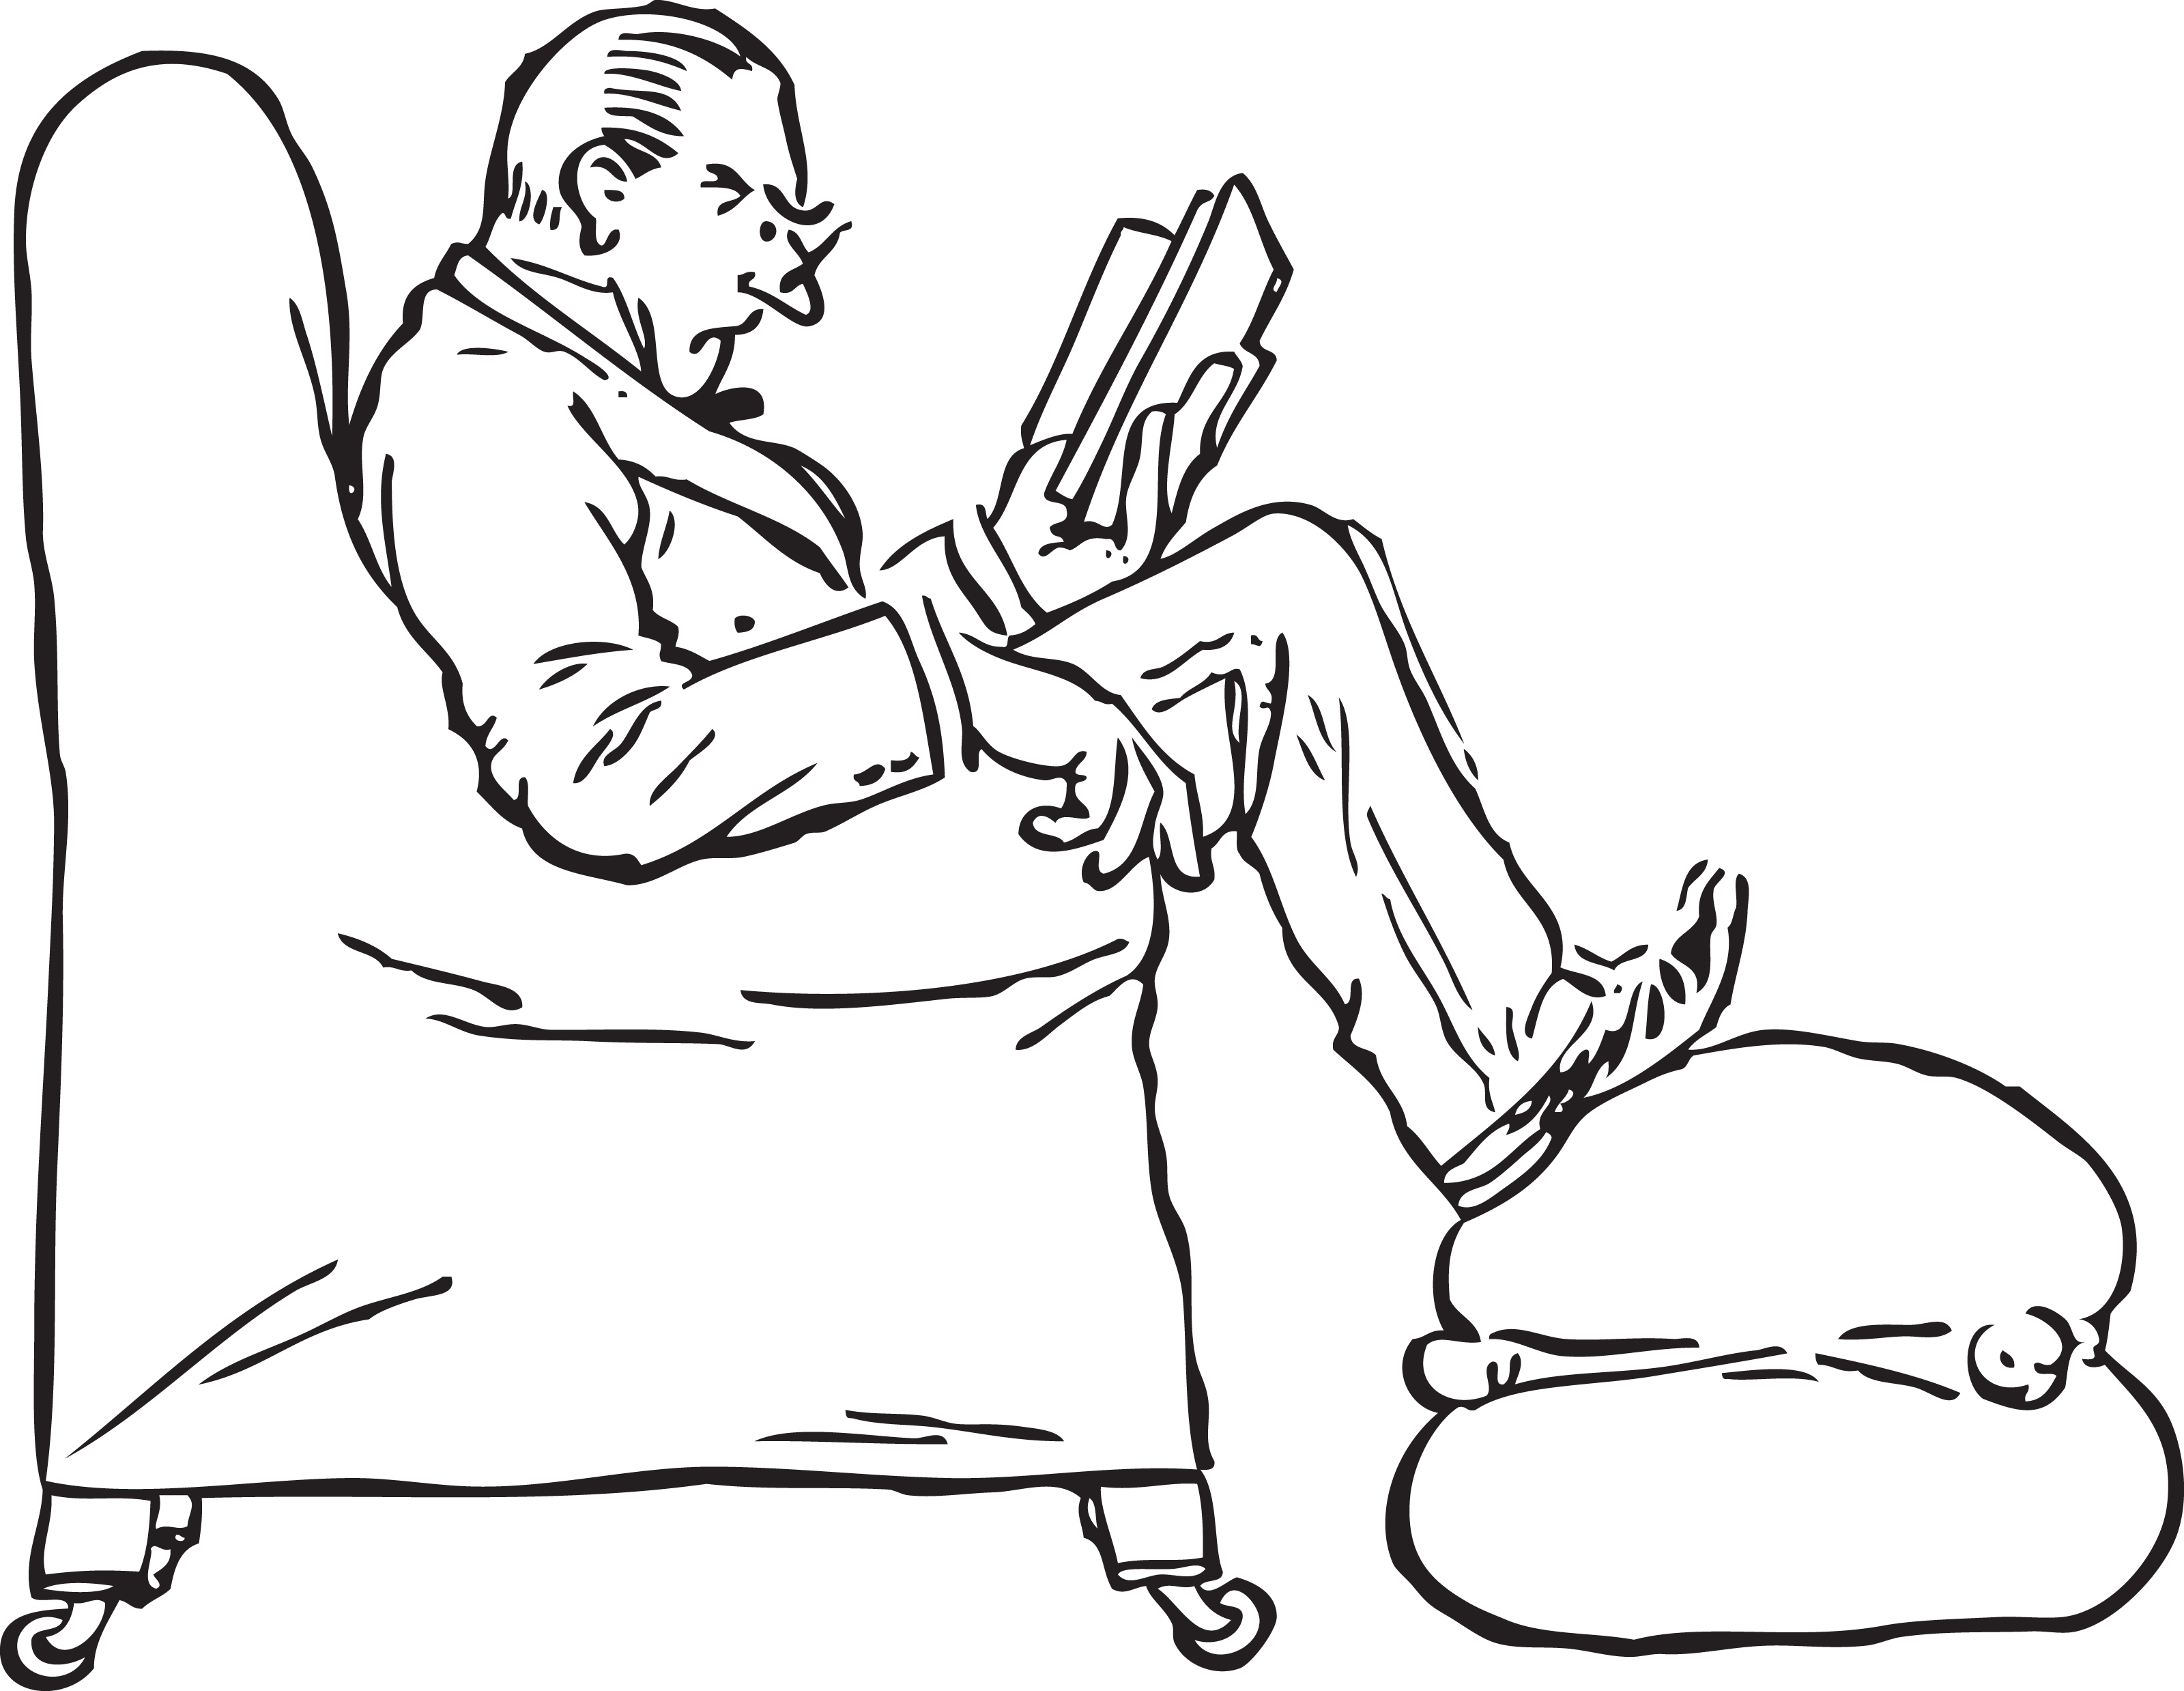 The Line Art And Living : Free retro clipart illustration of man reading book while